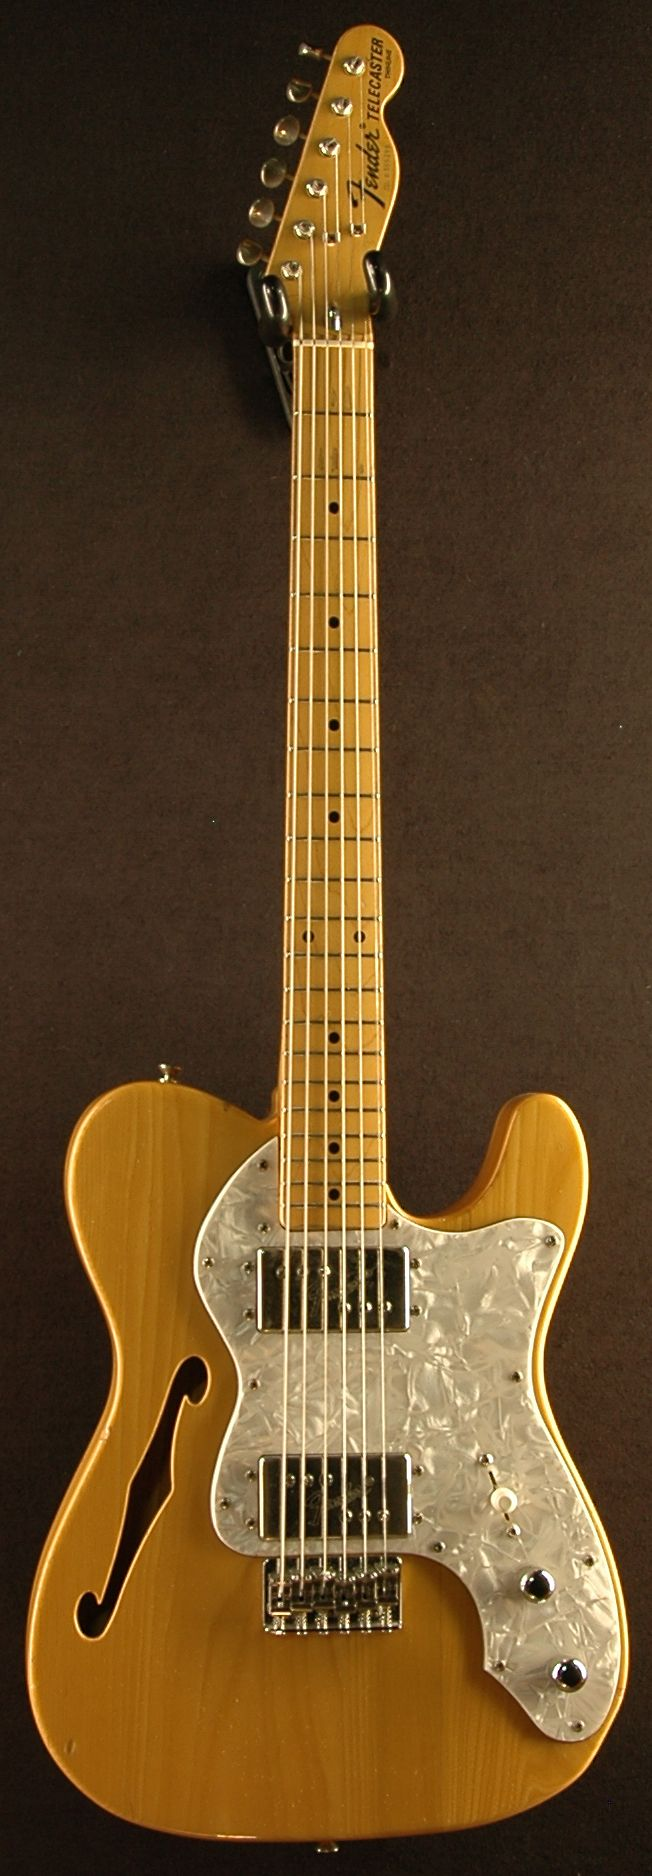 1968 Vintage Fender Thinline Telecaster with Mother of Pearl Pick Guard ~ SWEEET!